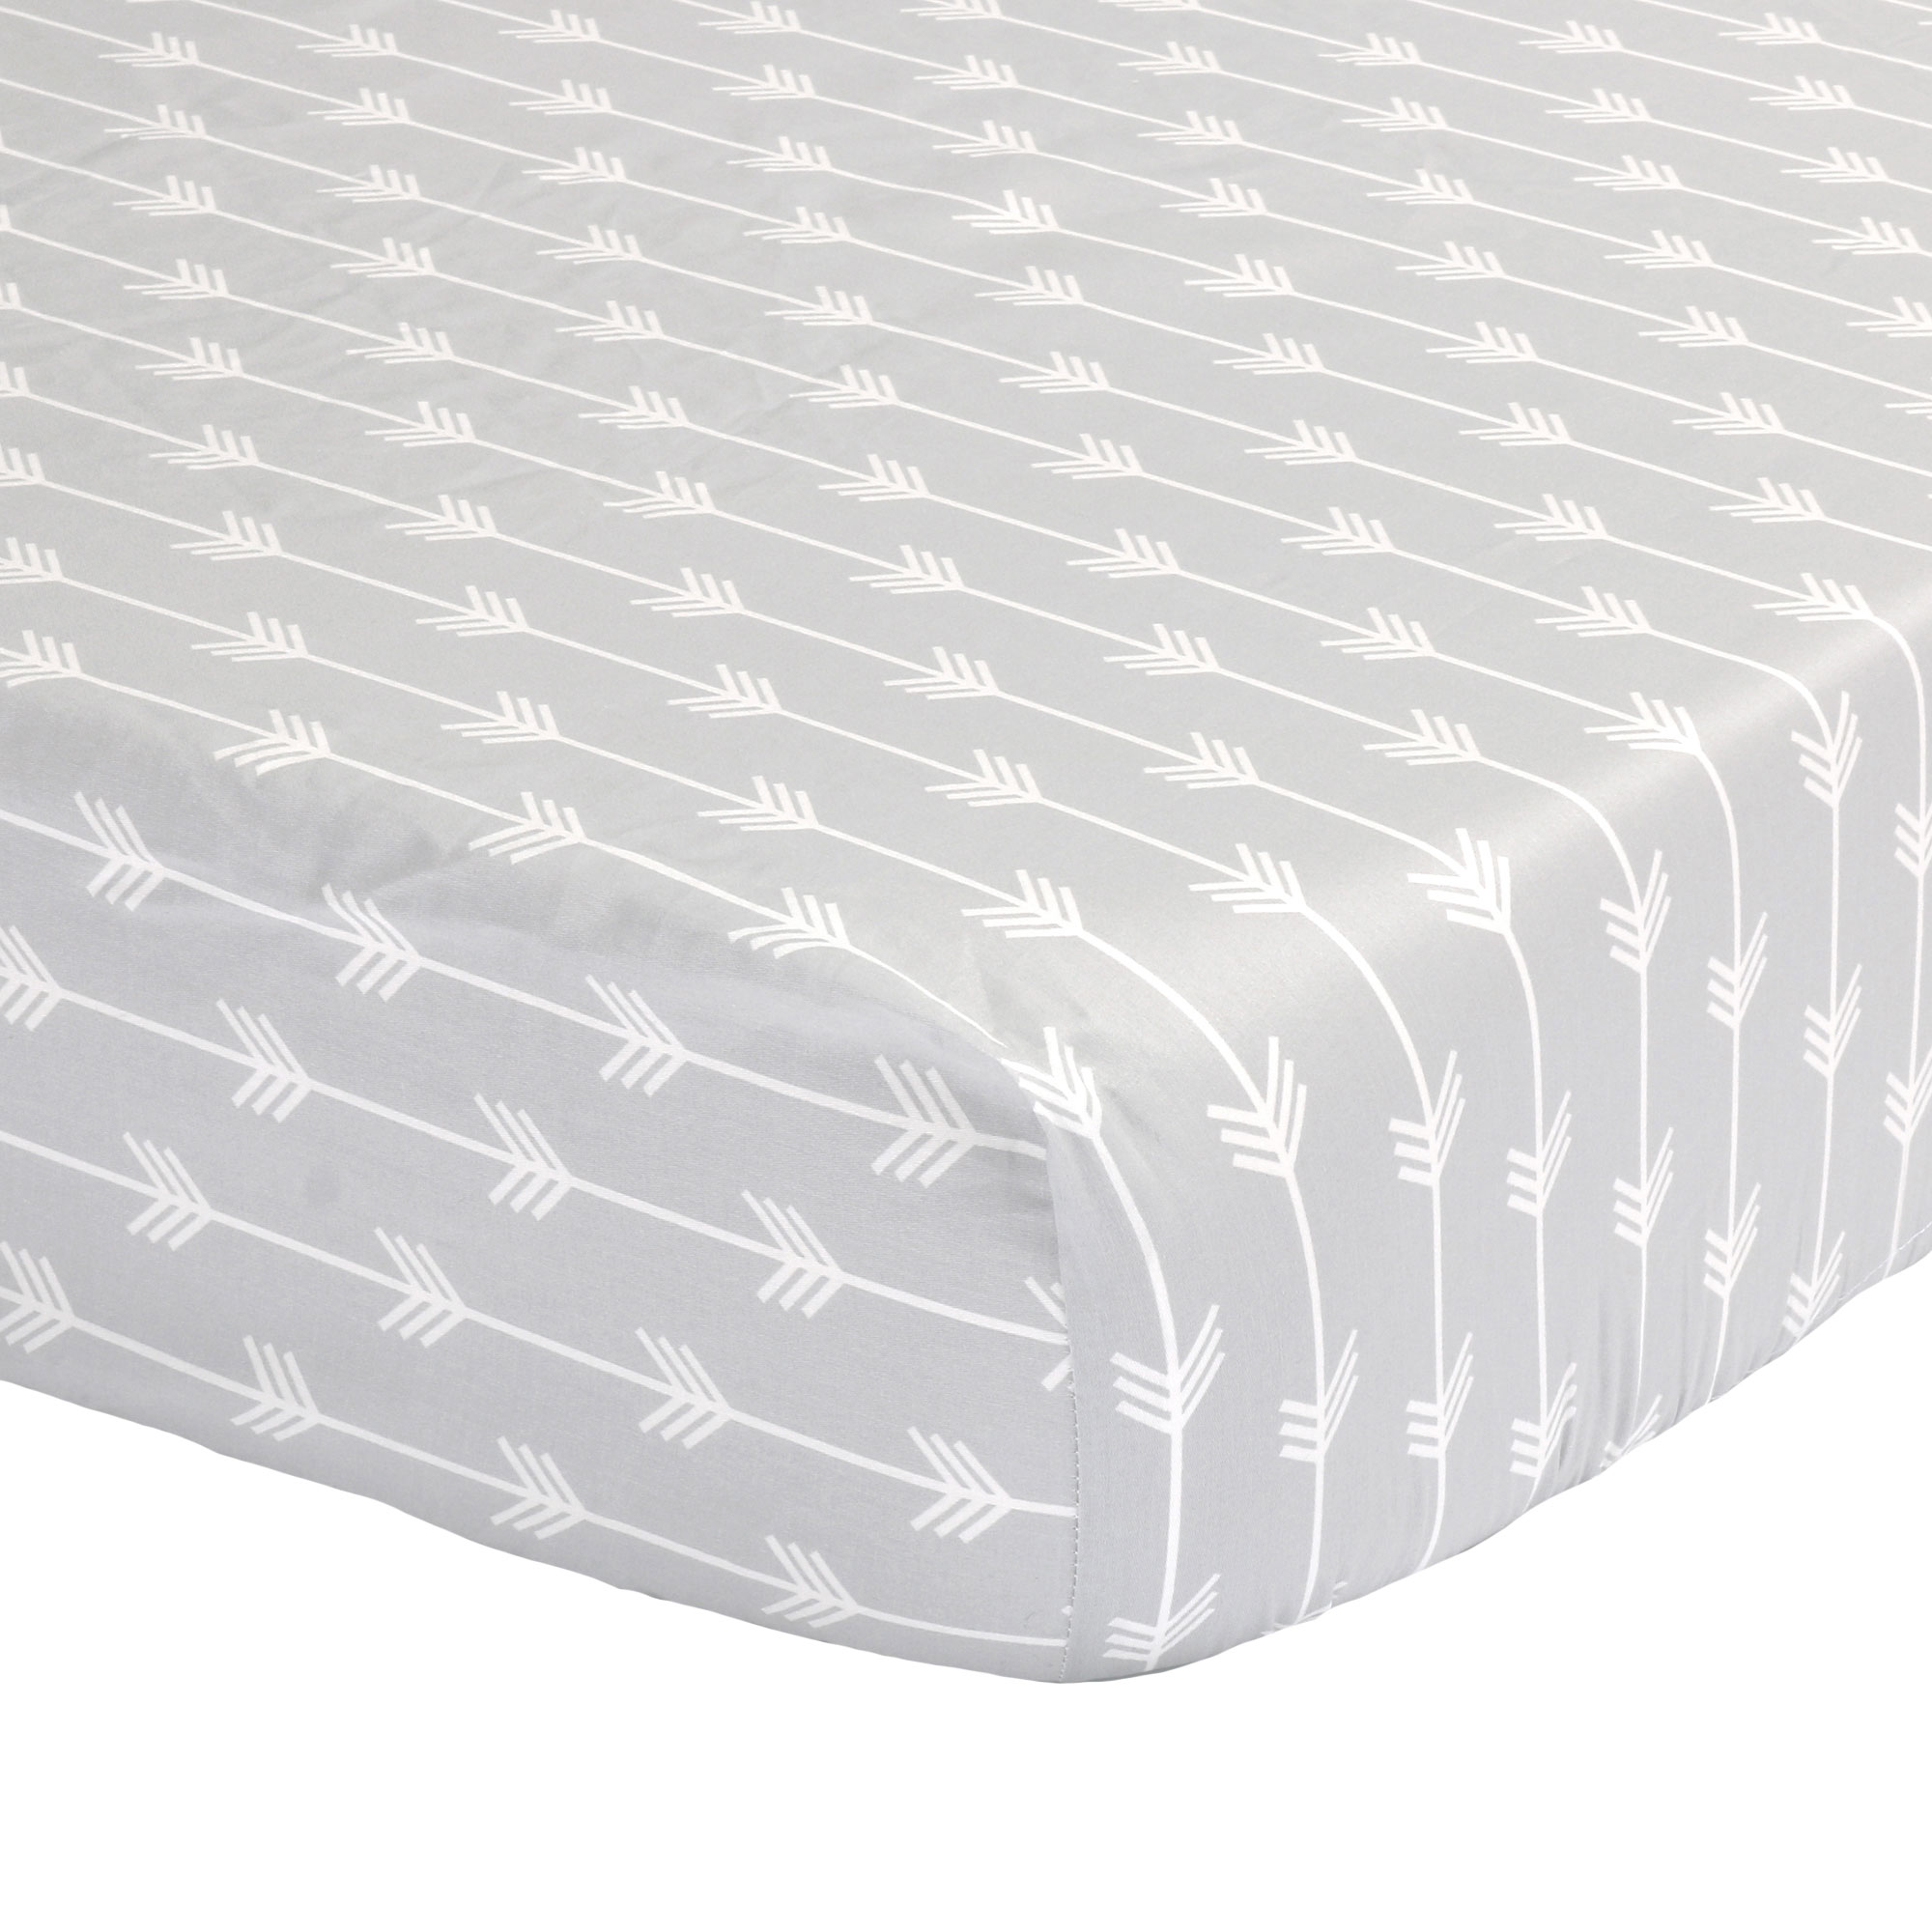 The Peanut Shell Baby Crib Fitted Sheet - Grey Arrow Chevron Print - 100% Cotton Sateen, Fits Standard 52 by 28 Inch Mattress